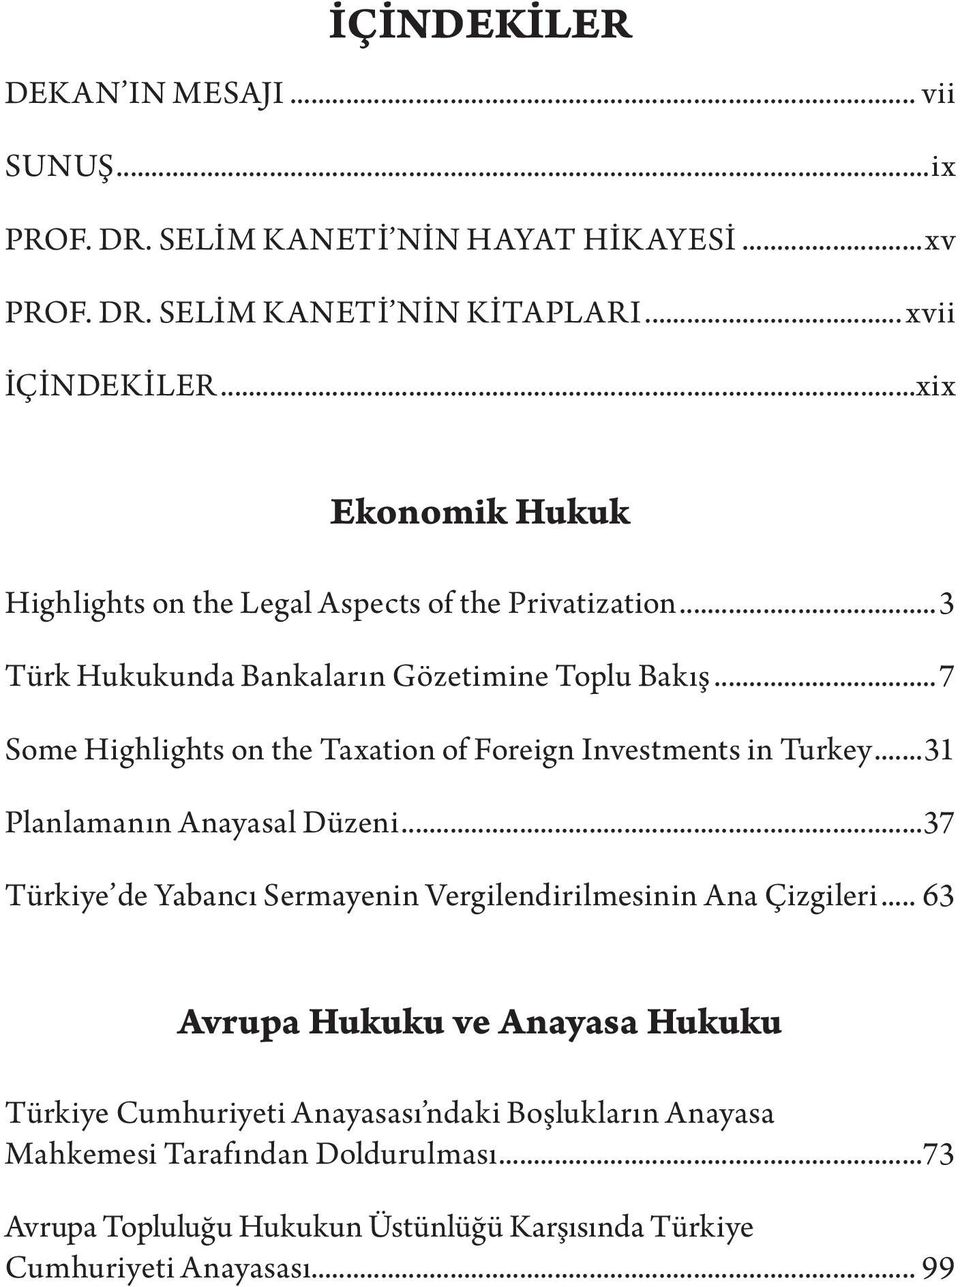 ..7 Some Highlights on the Taxation of Foreign Investments in Turkey...31 Planlamanın Anayasal Düzeni.